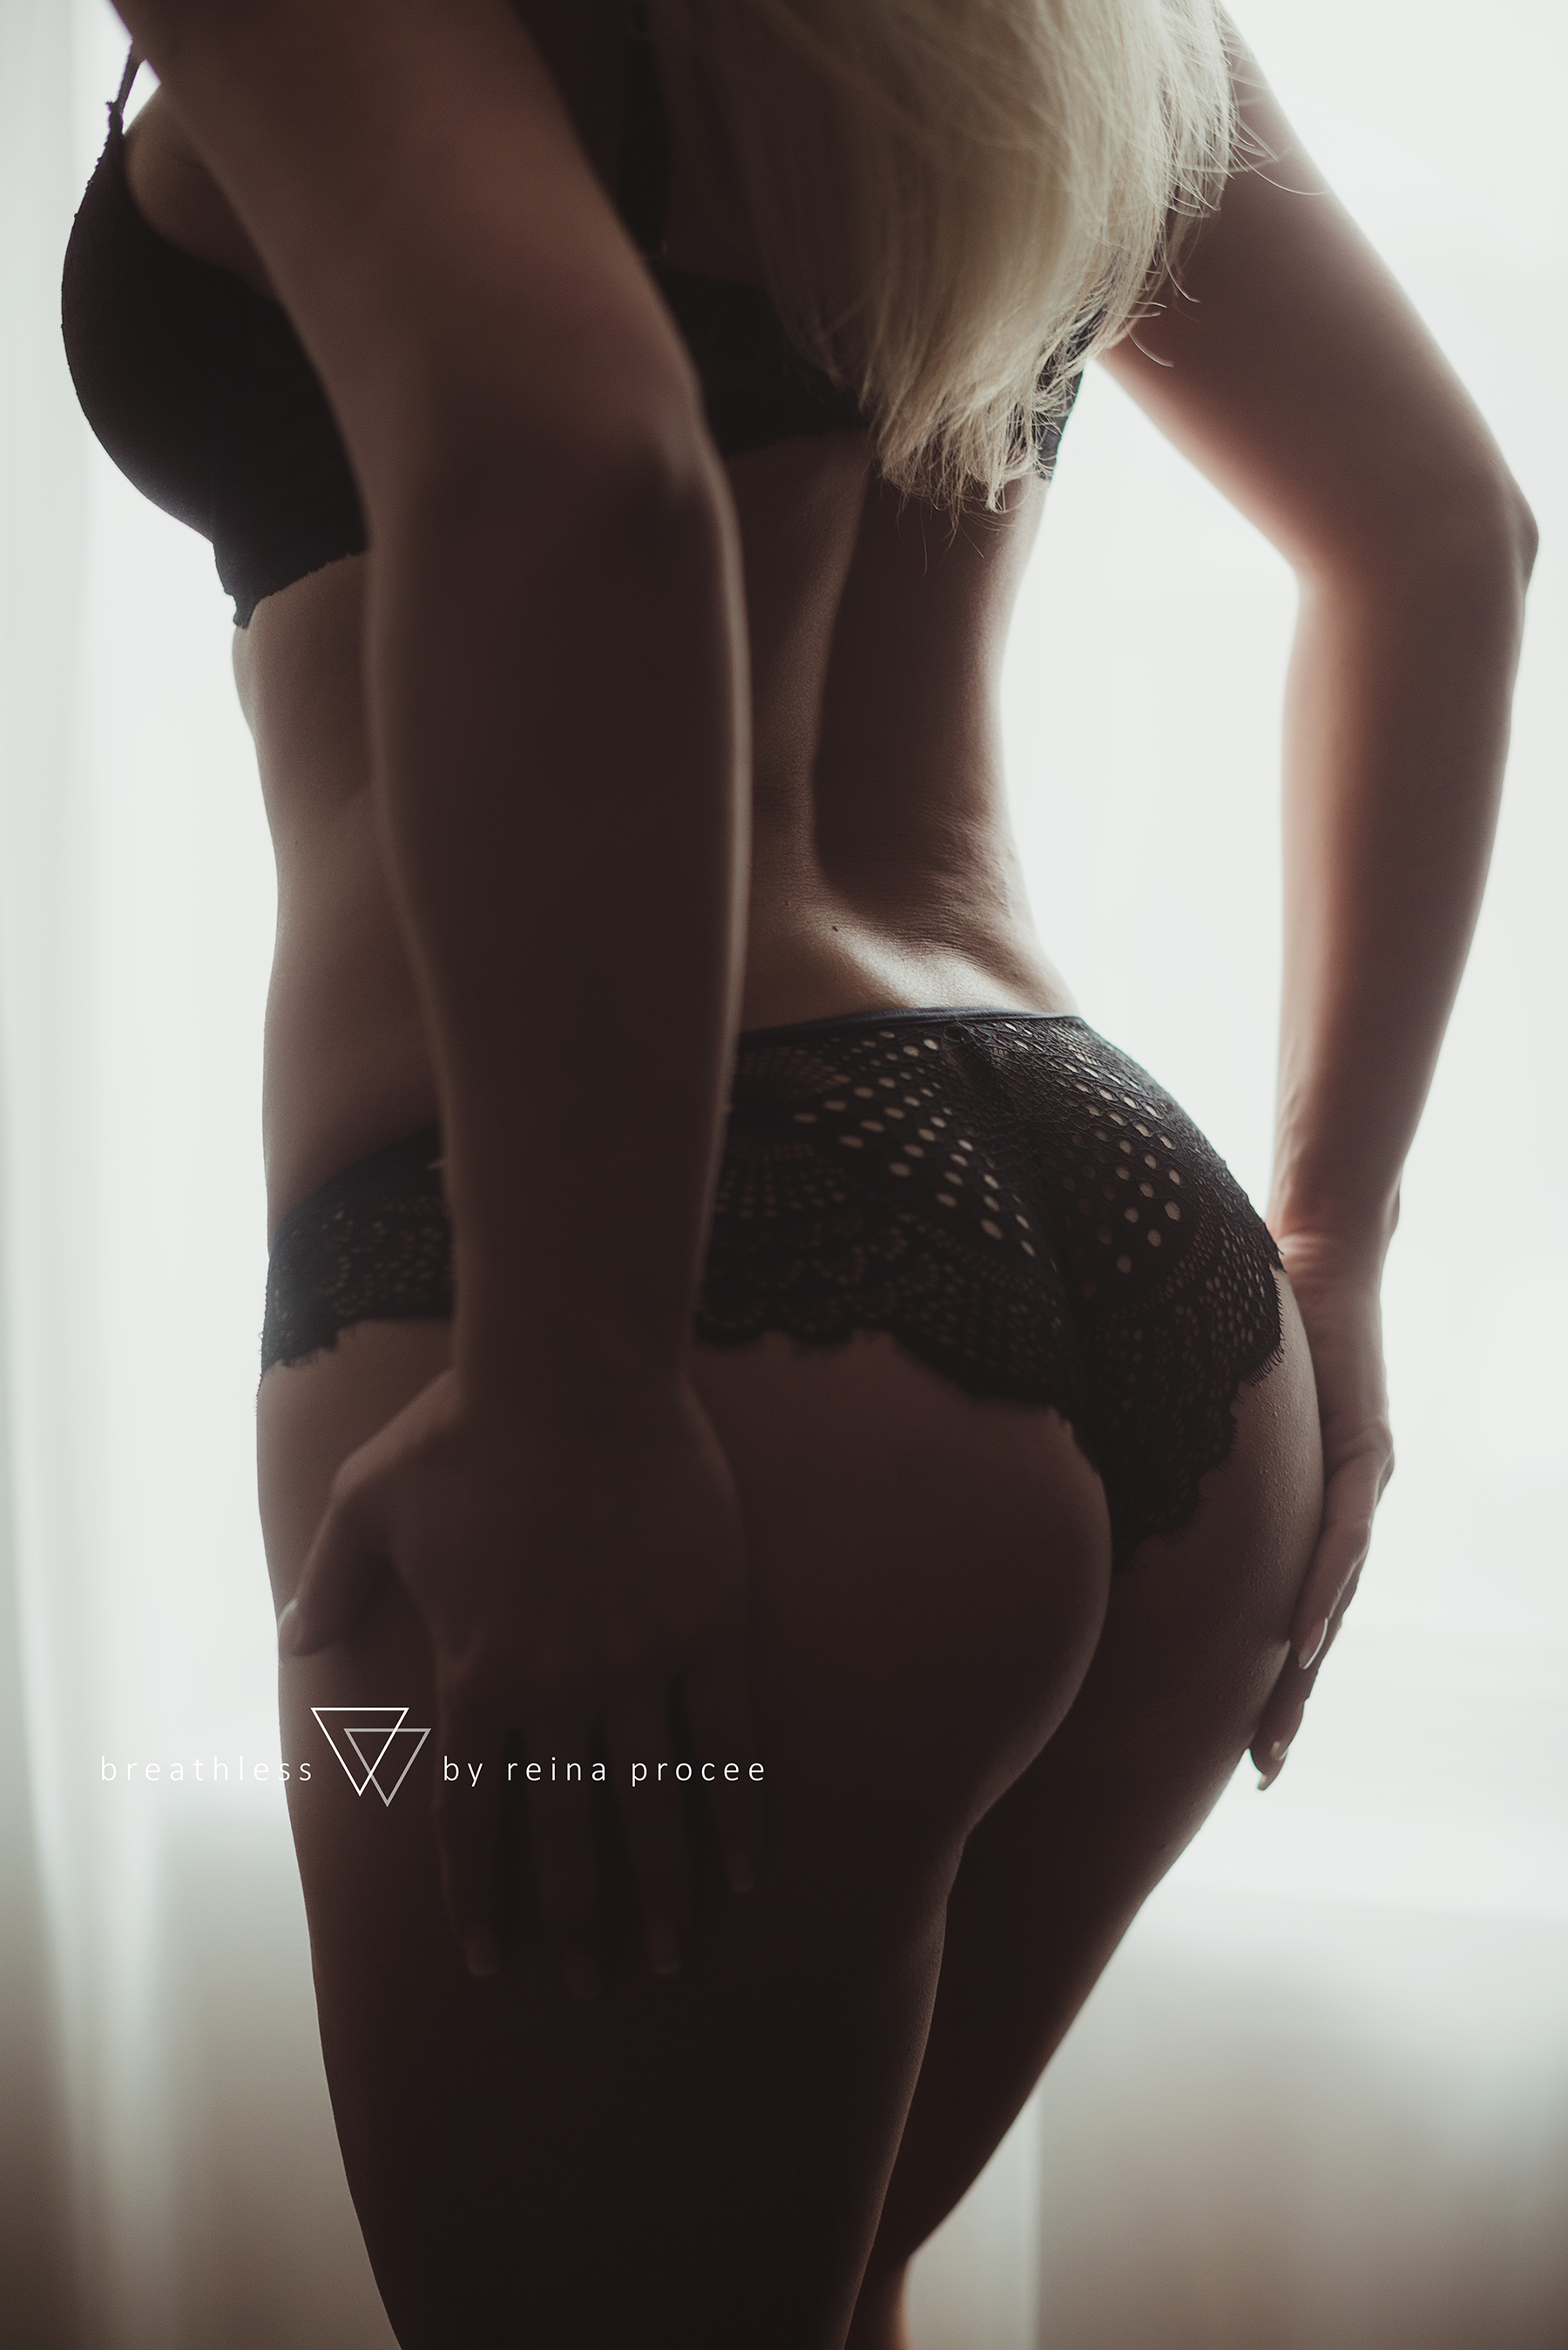 montreal-boudoir-beauty-exotic-empower-women-ladies-comfort-progress-photography-photographer-3.png